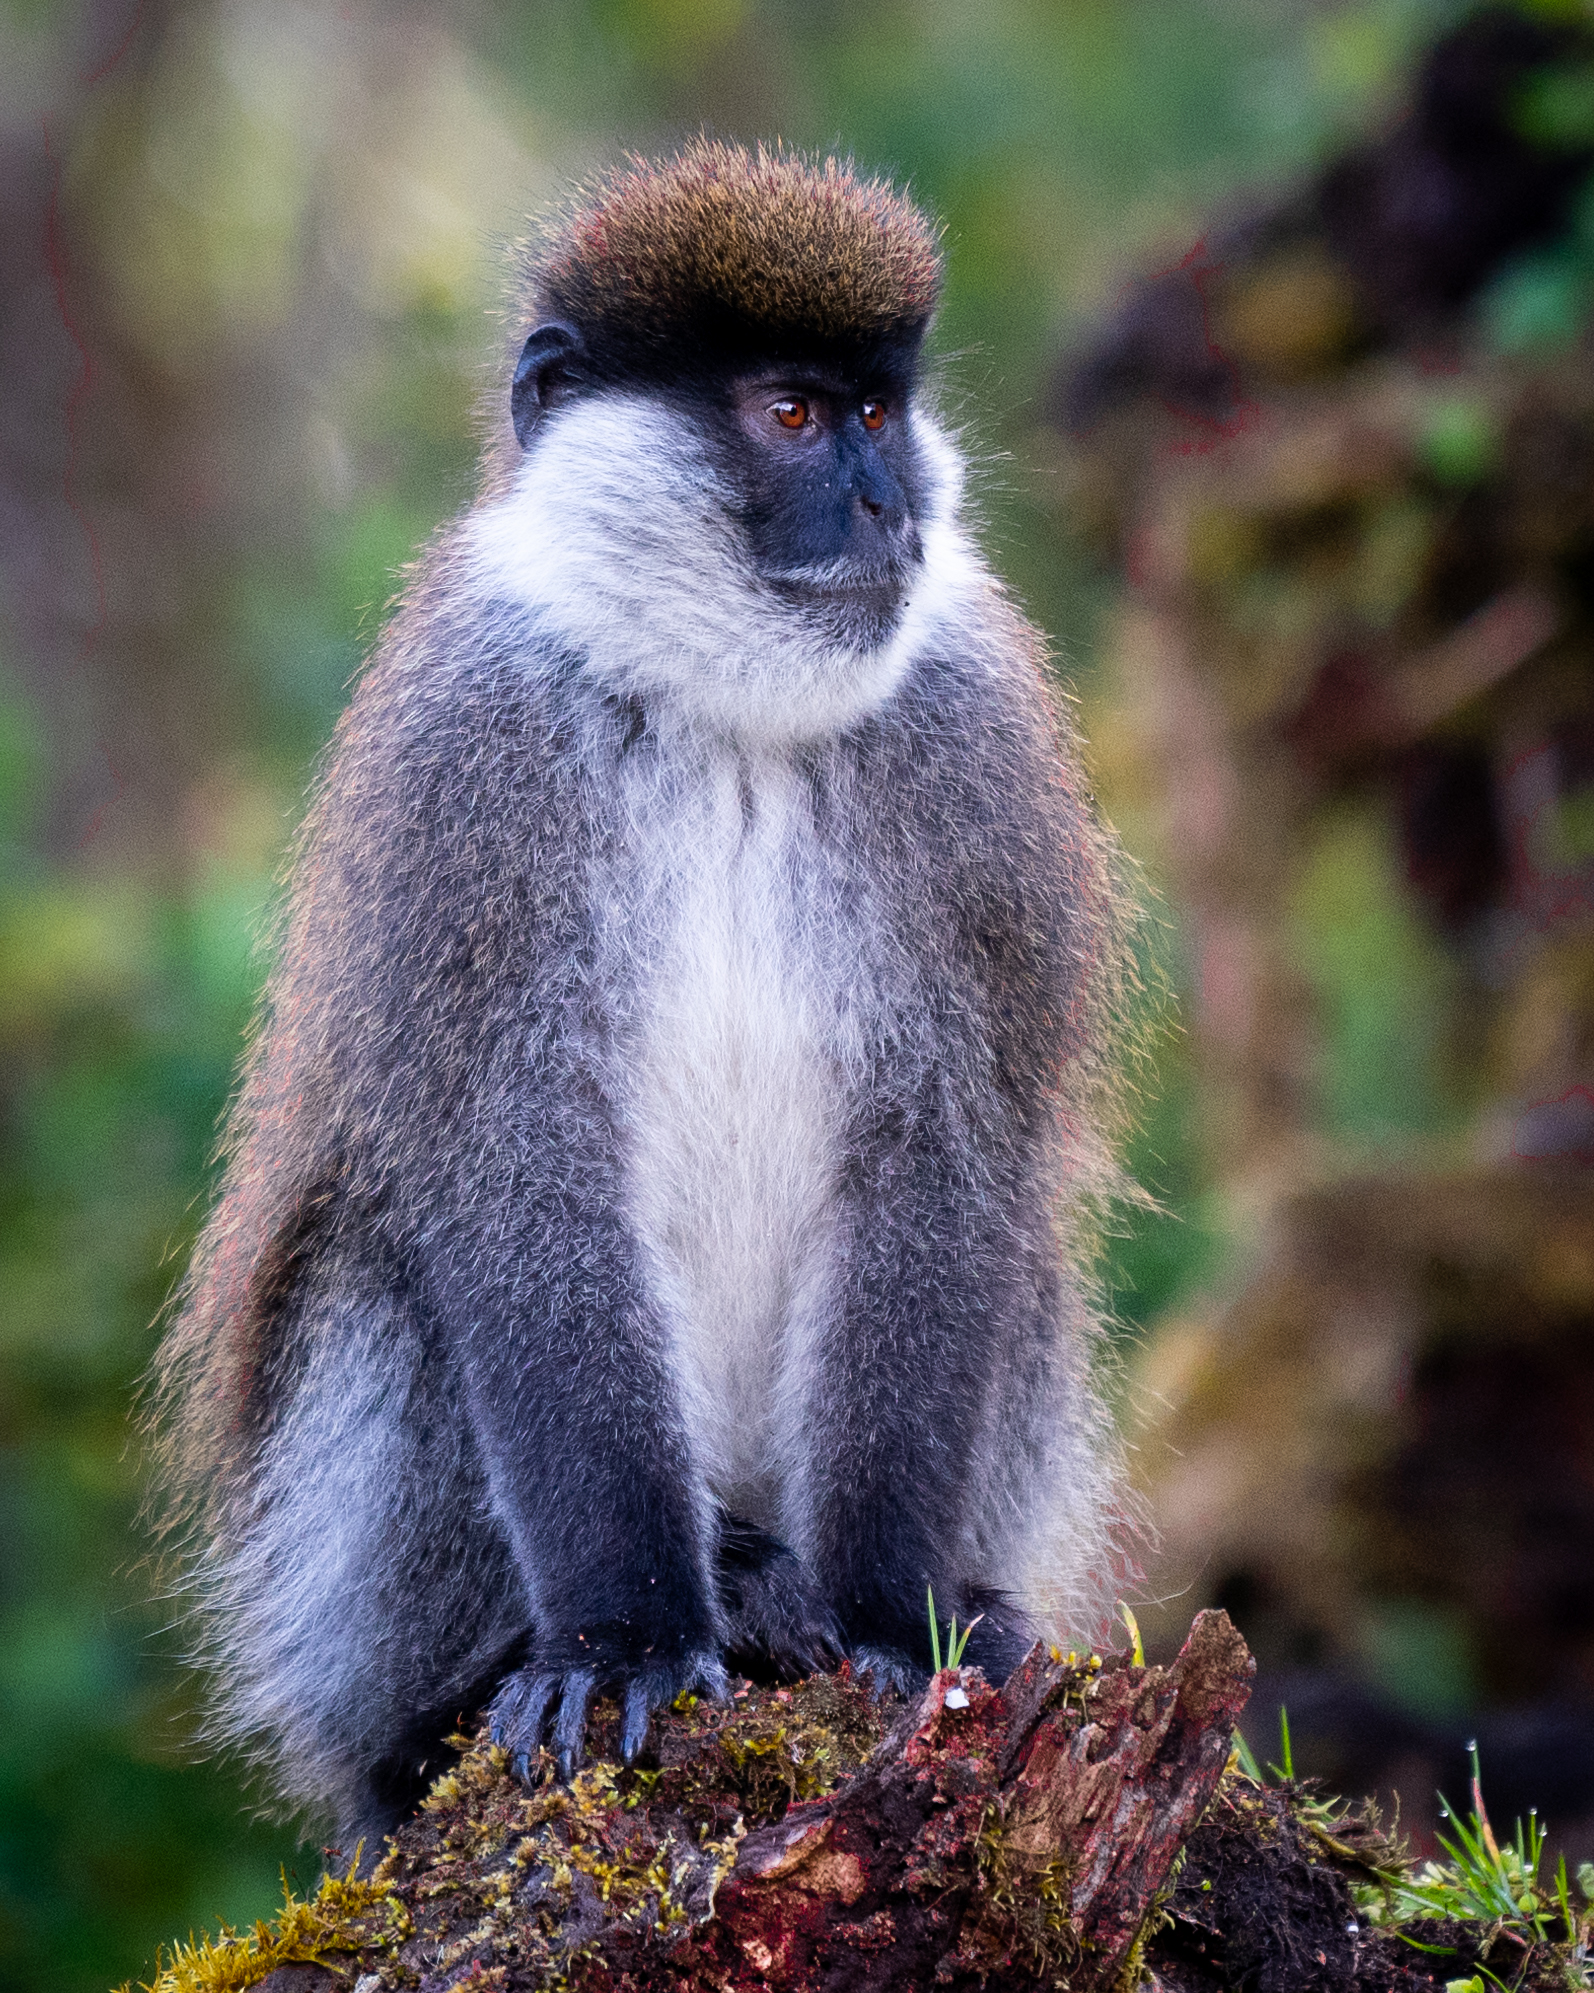 Endemic Bale Monkey in the Harenna Forest. We did not spot the Lions or Leopards on this trip.